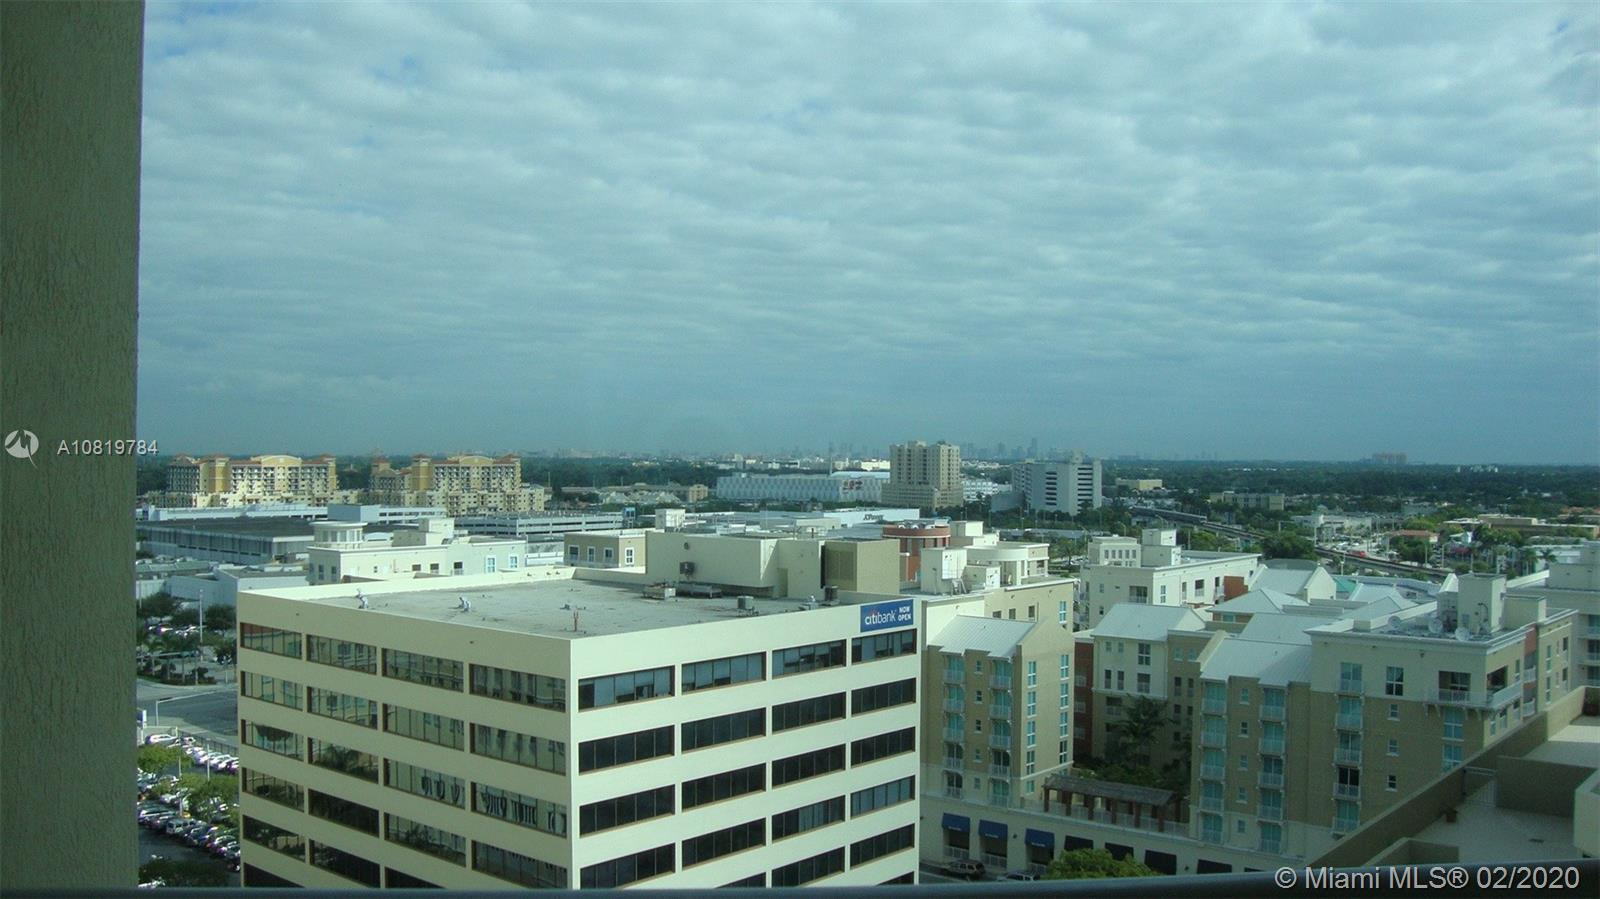 SPACIOUS 2 BEDROOM 2 BATHROOM + DEN APARTMENT IN THE HEART OF DOWNTOWN DADELAND. READY TO MOVE IN ..